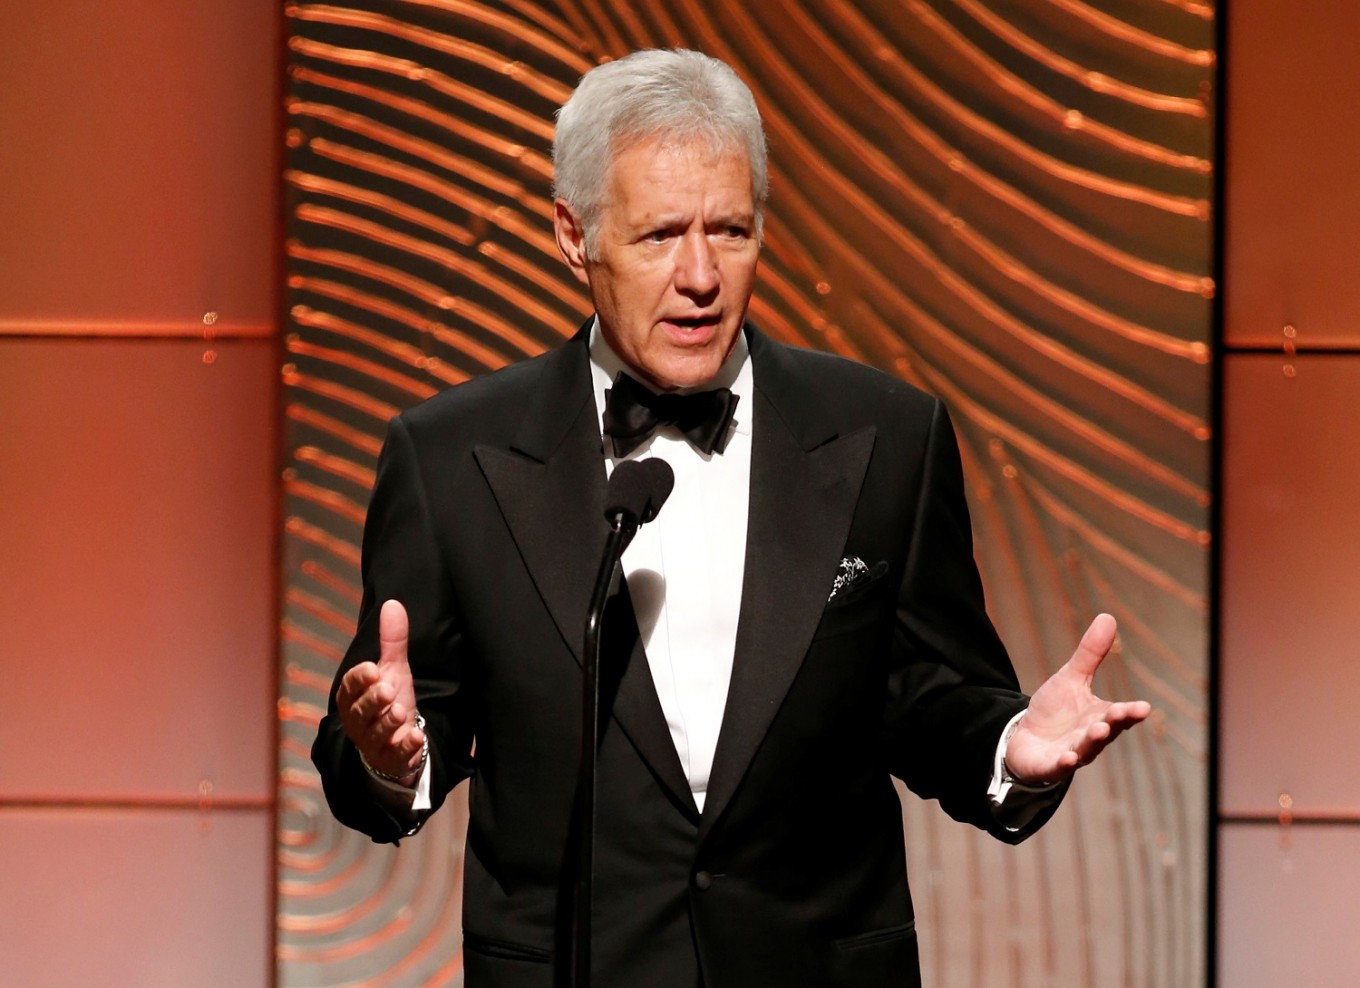 Alex Trebek sees 'Jeopardy!' legacy as 'the importance of knowledge'